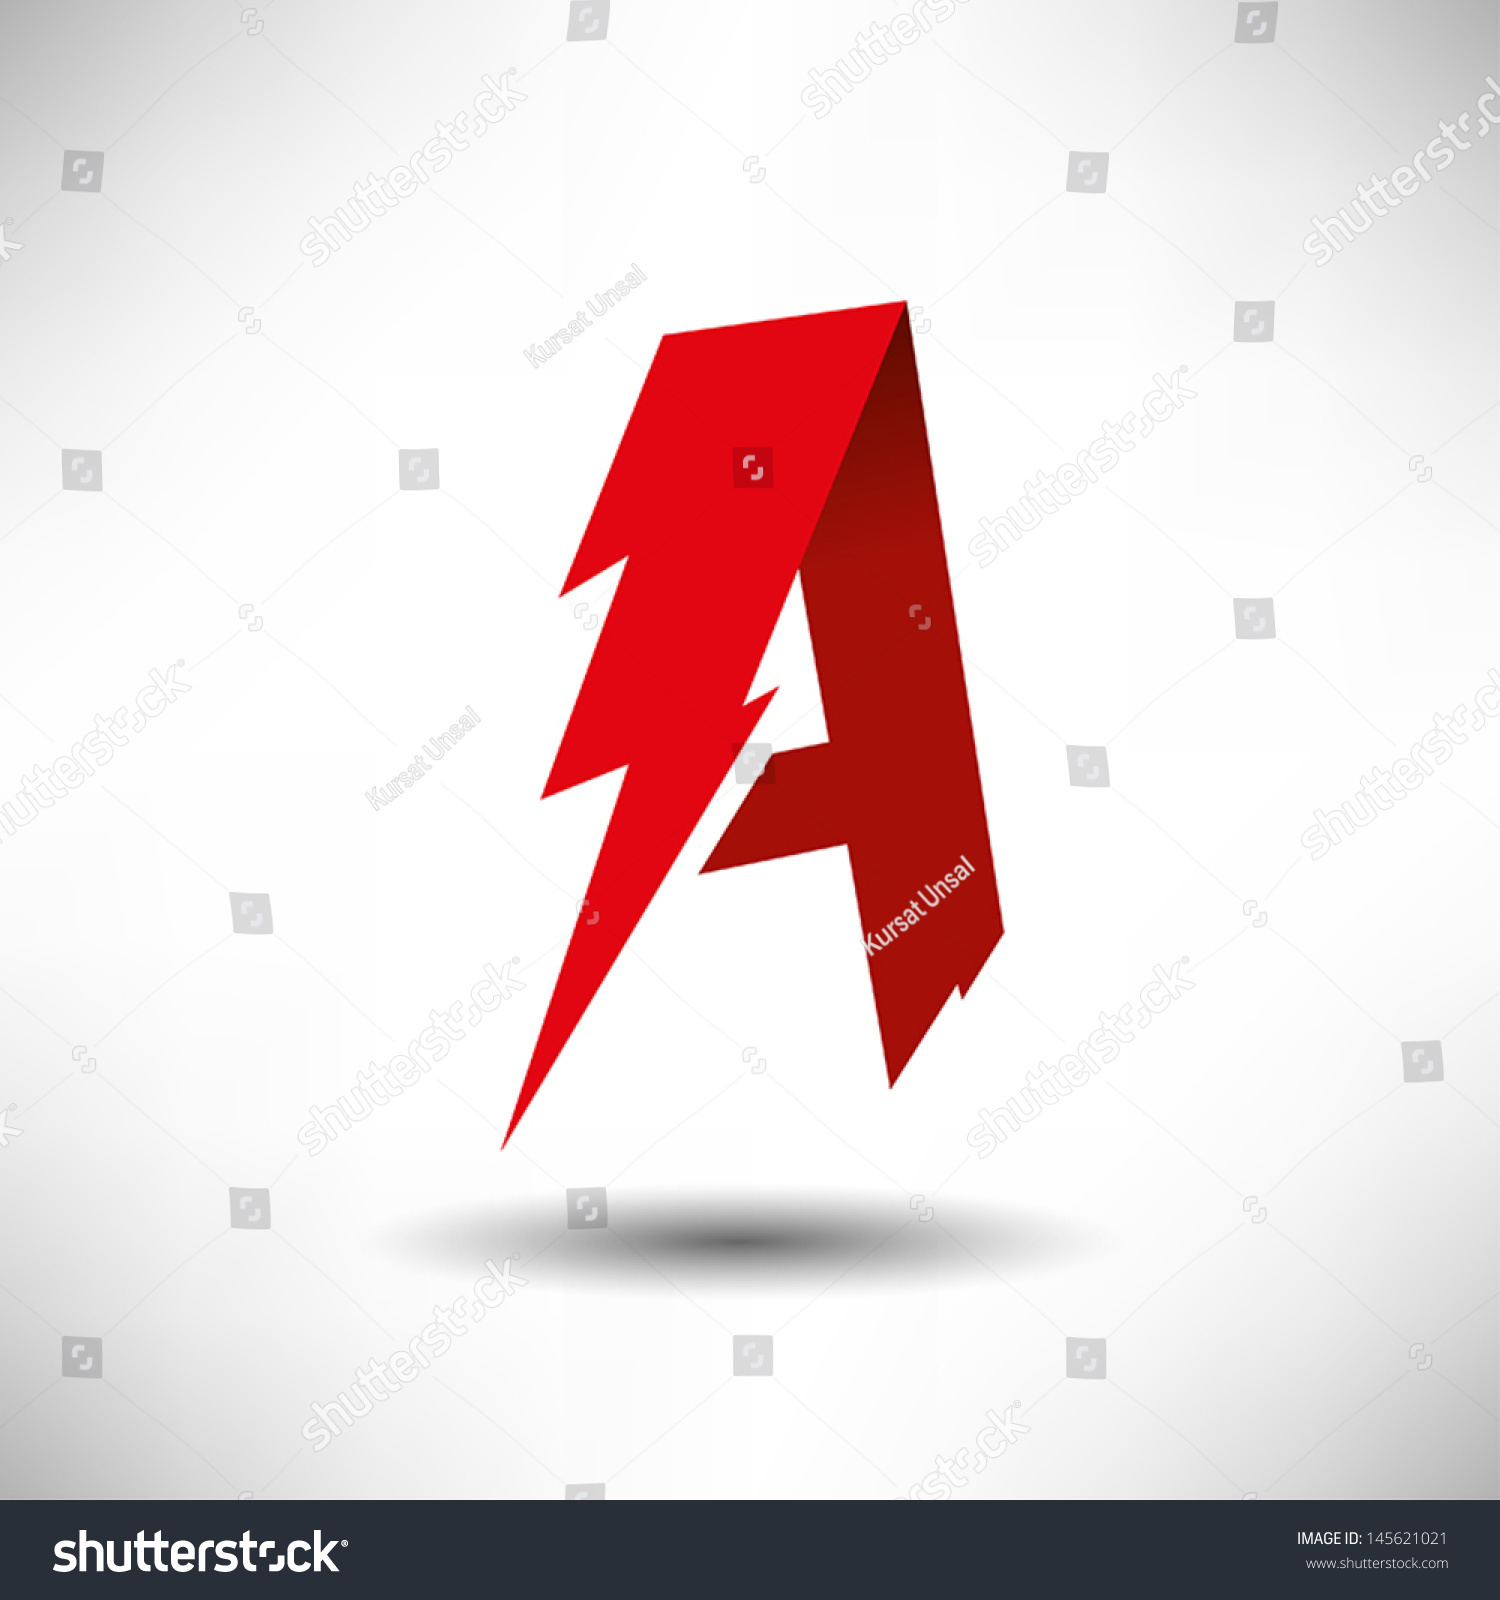 Red lightning bolt symbol home design game hay image gallery lightning bolt letters buycottarizona Image collections